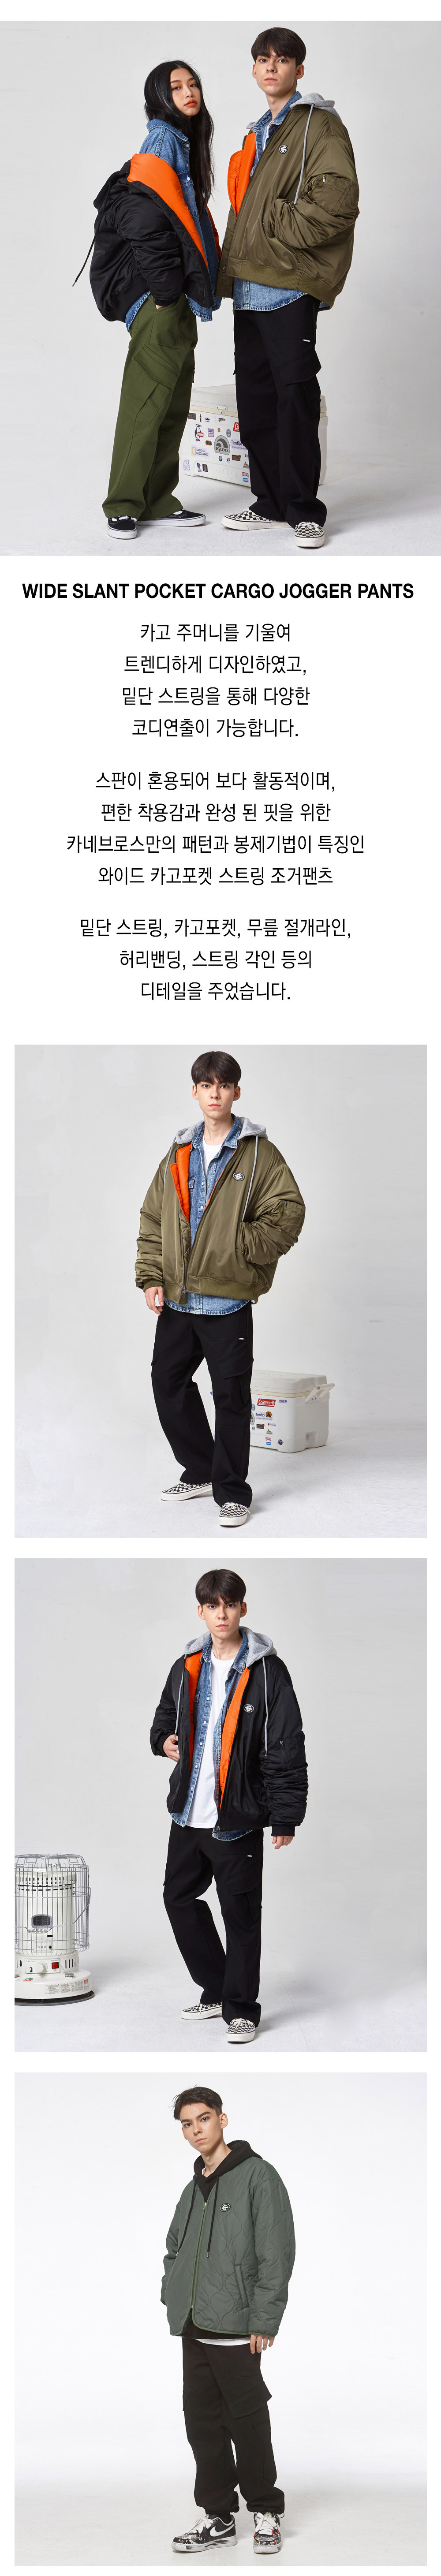 WIDE-SLANT-POCKET-CARGO-JOGGER-PANTS-BK_02.jpg